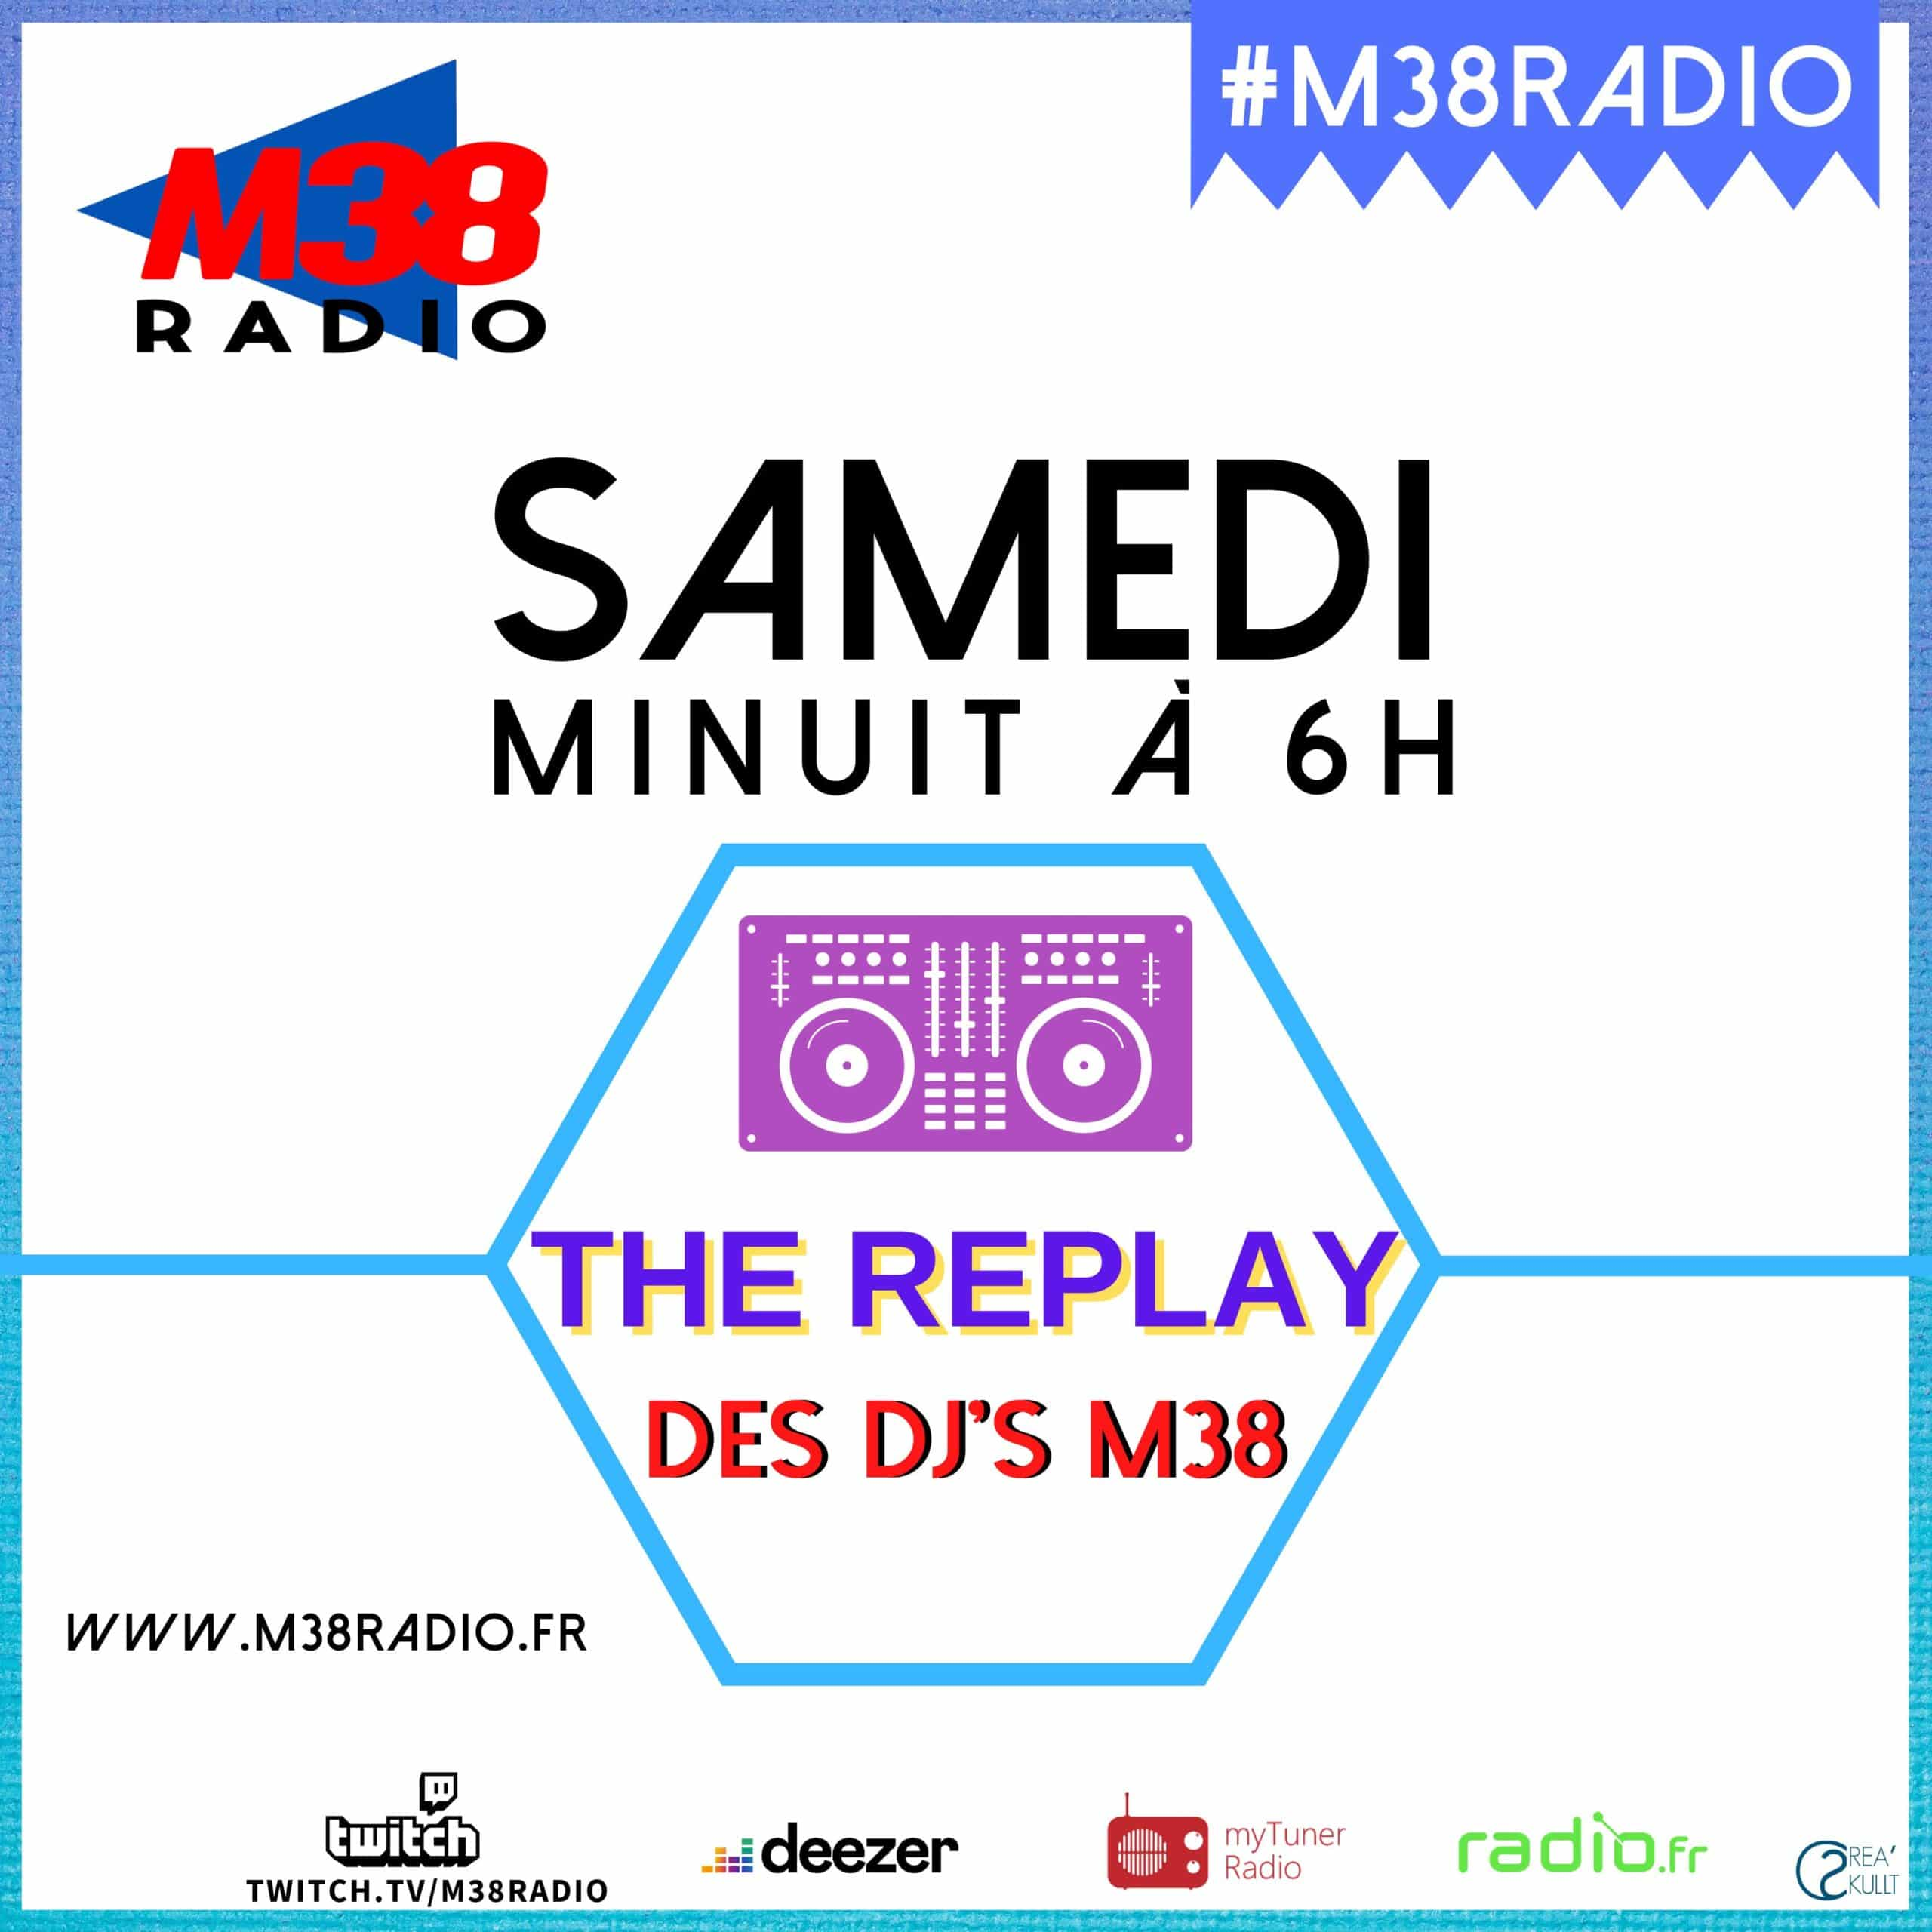 The replay sur M38 radio